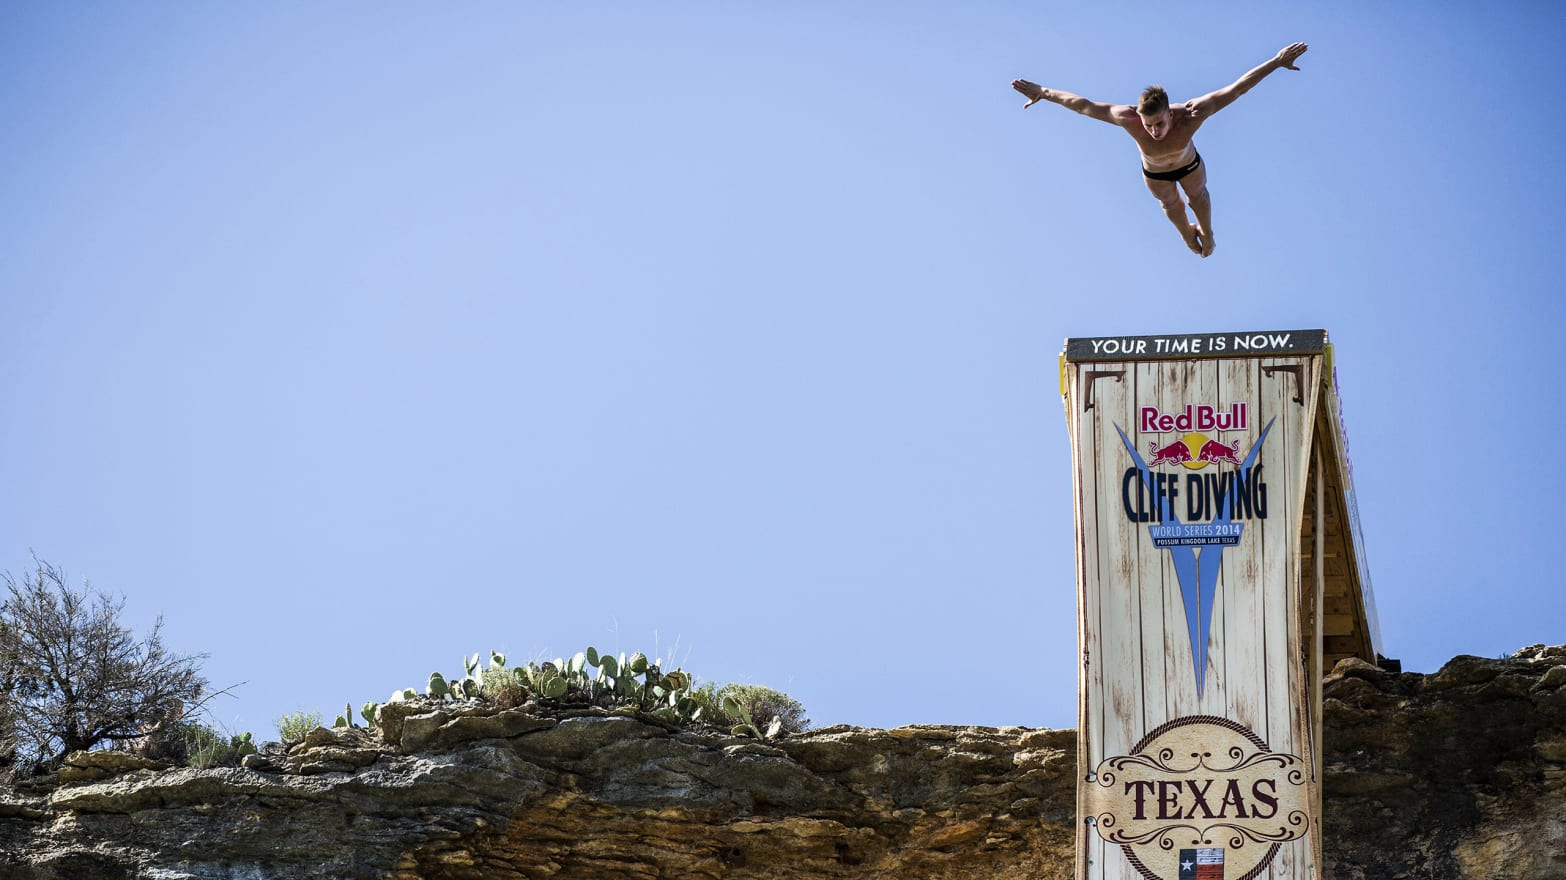 The World Series of Cliff Diving Takes Itself Very Seriously